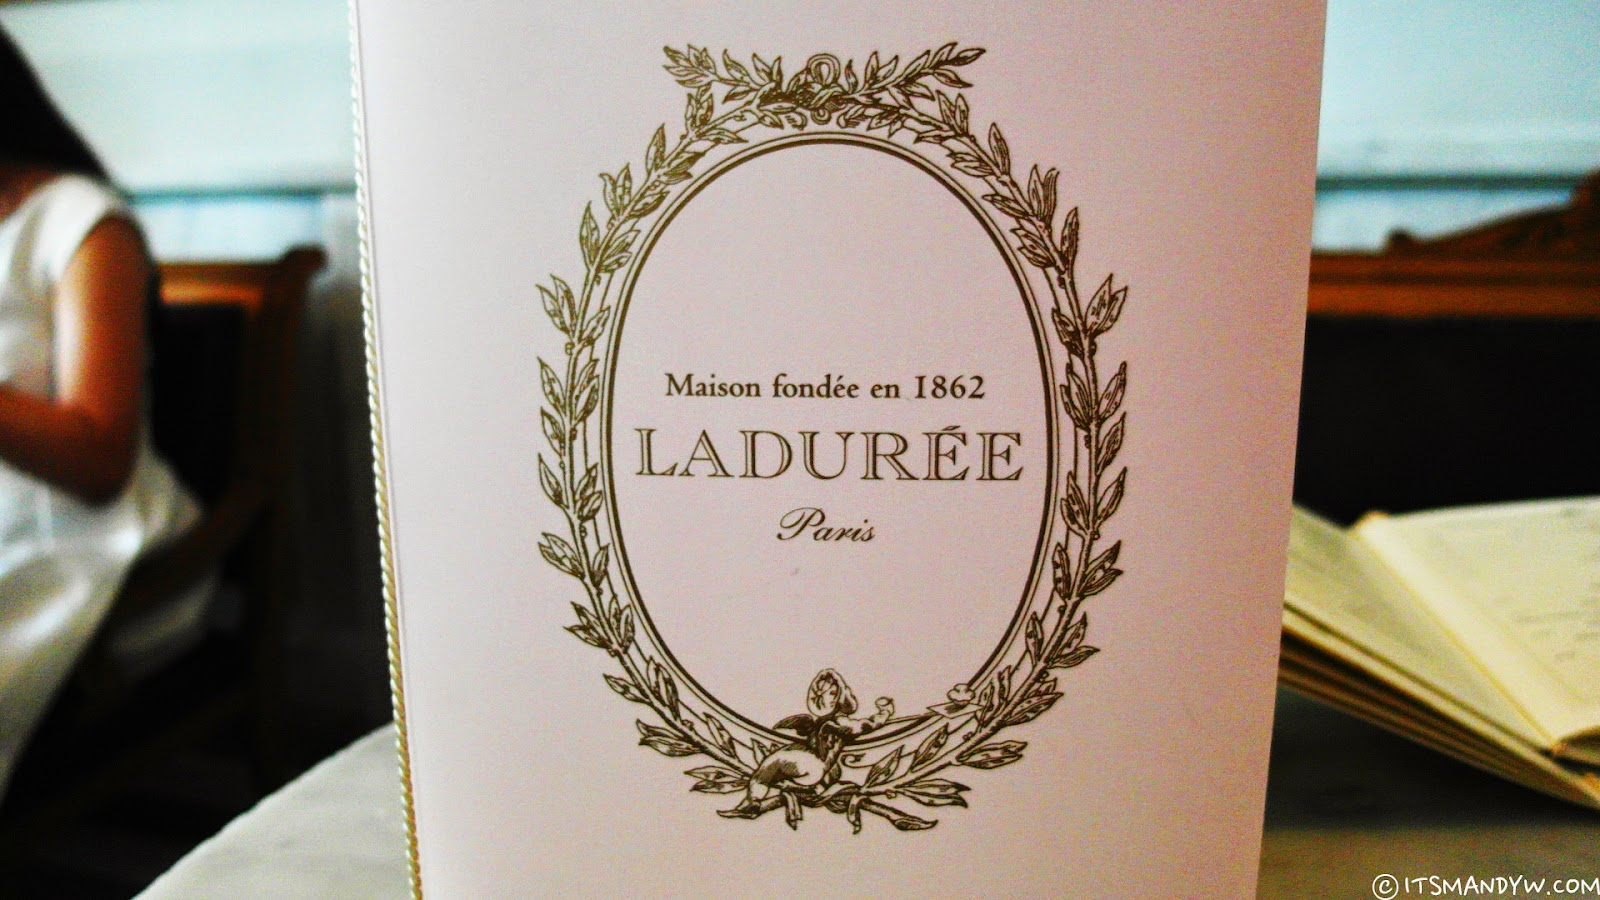 Laduree Harrods